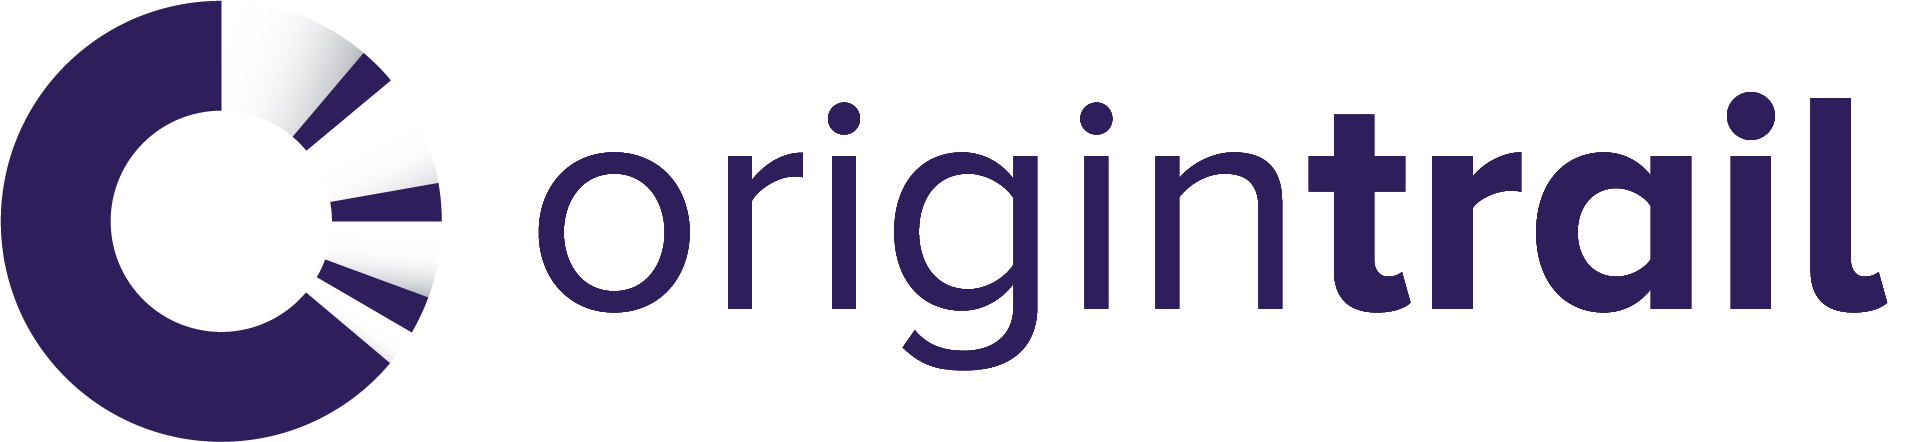 origintrail dark purple